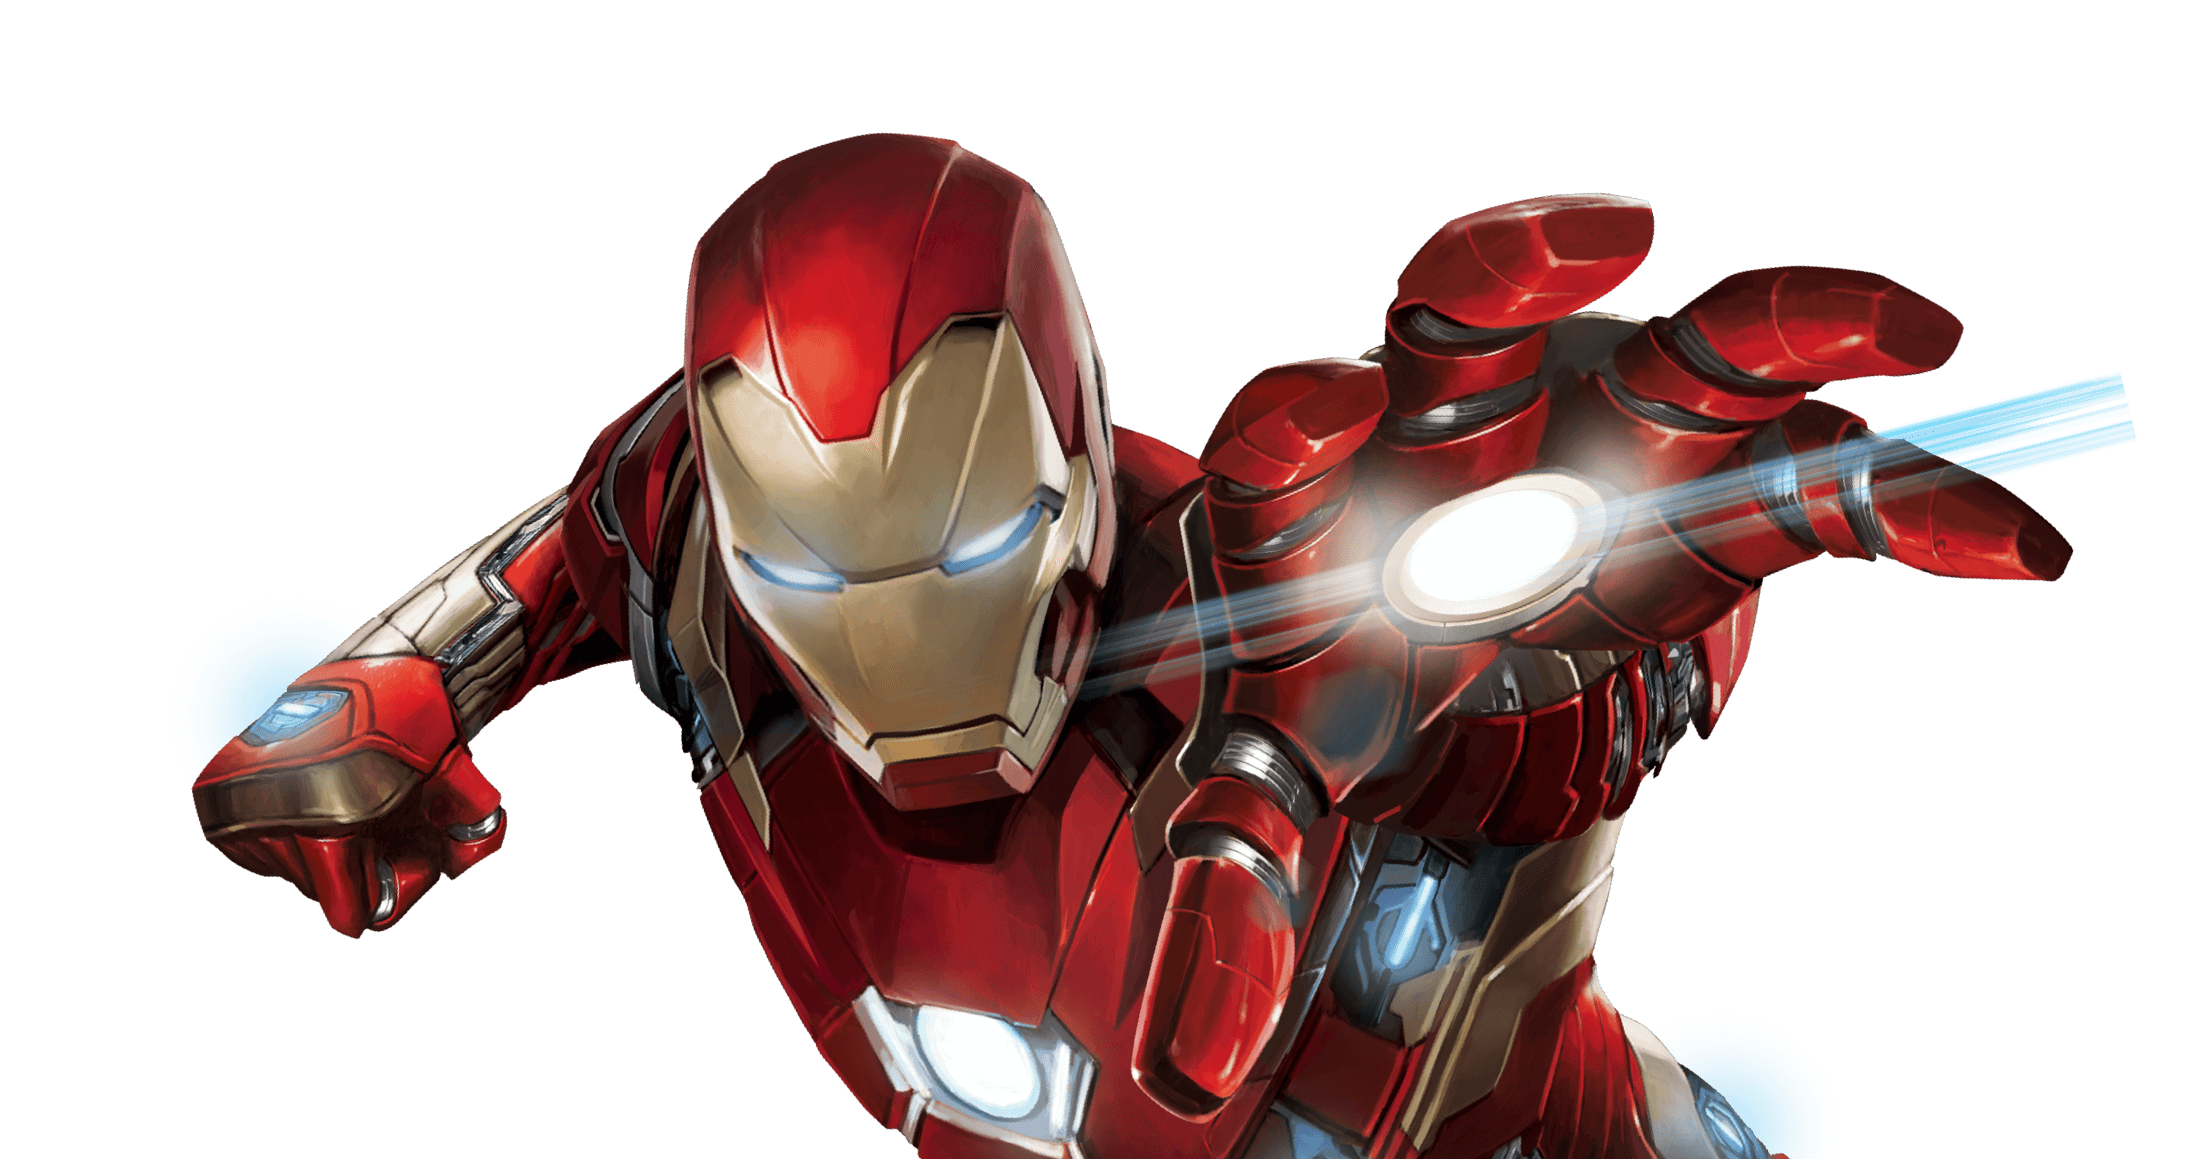 Iron Man Images Hd Wallpapers Ironman Png 33